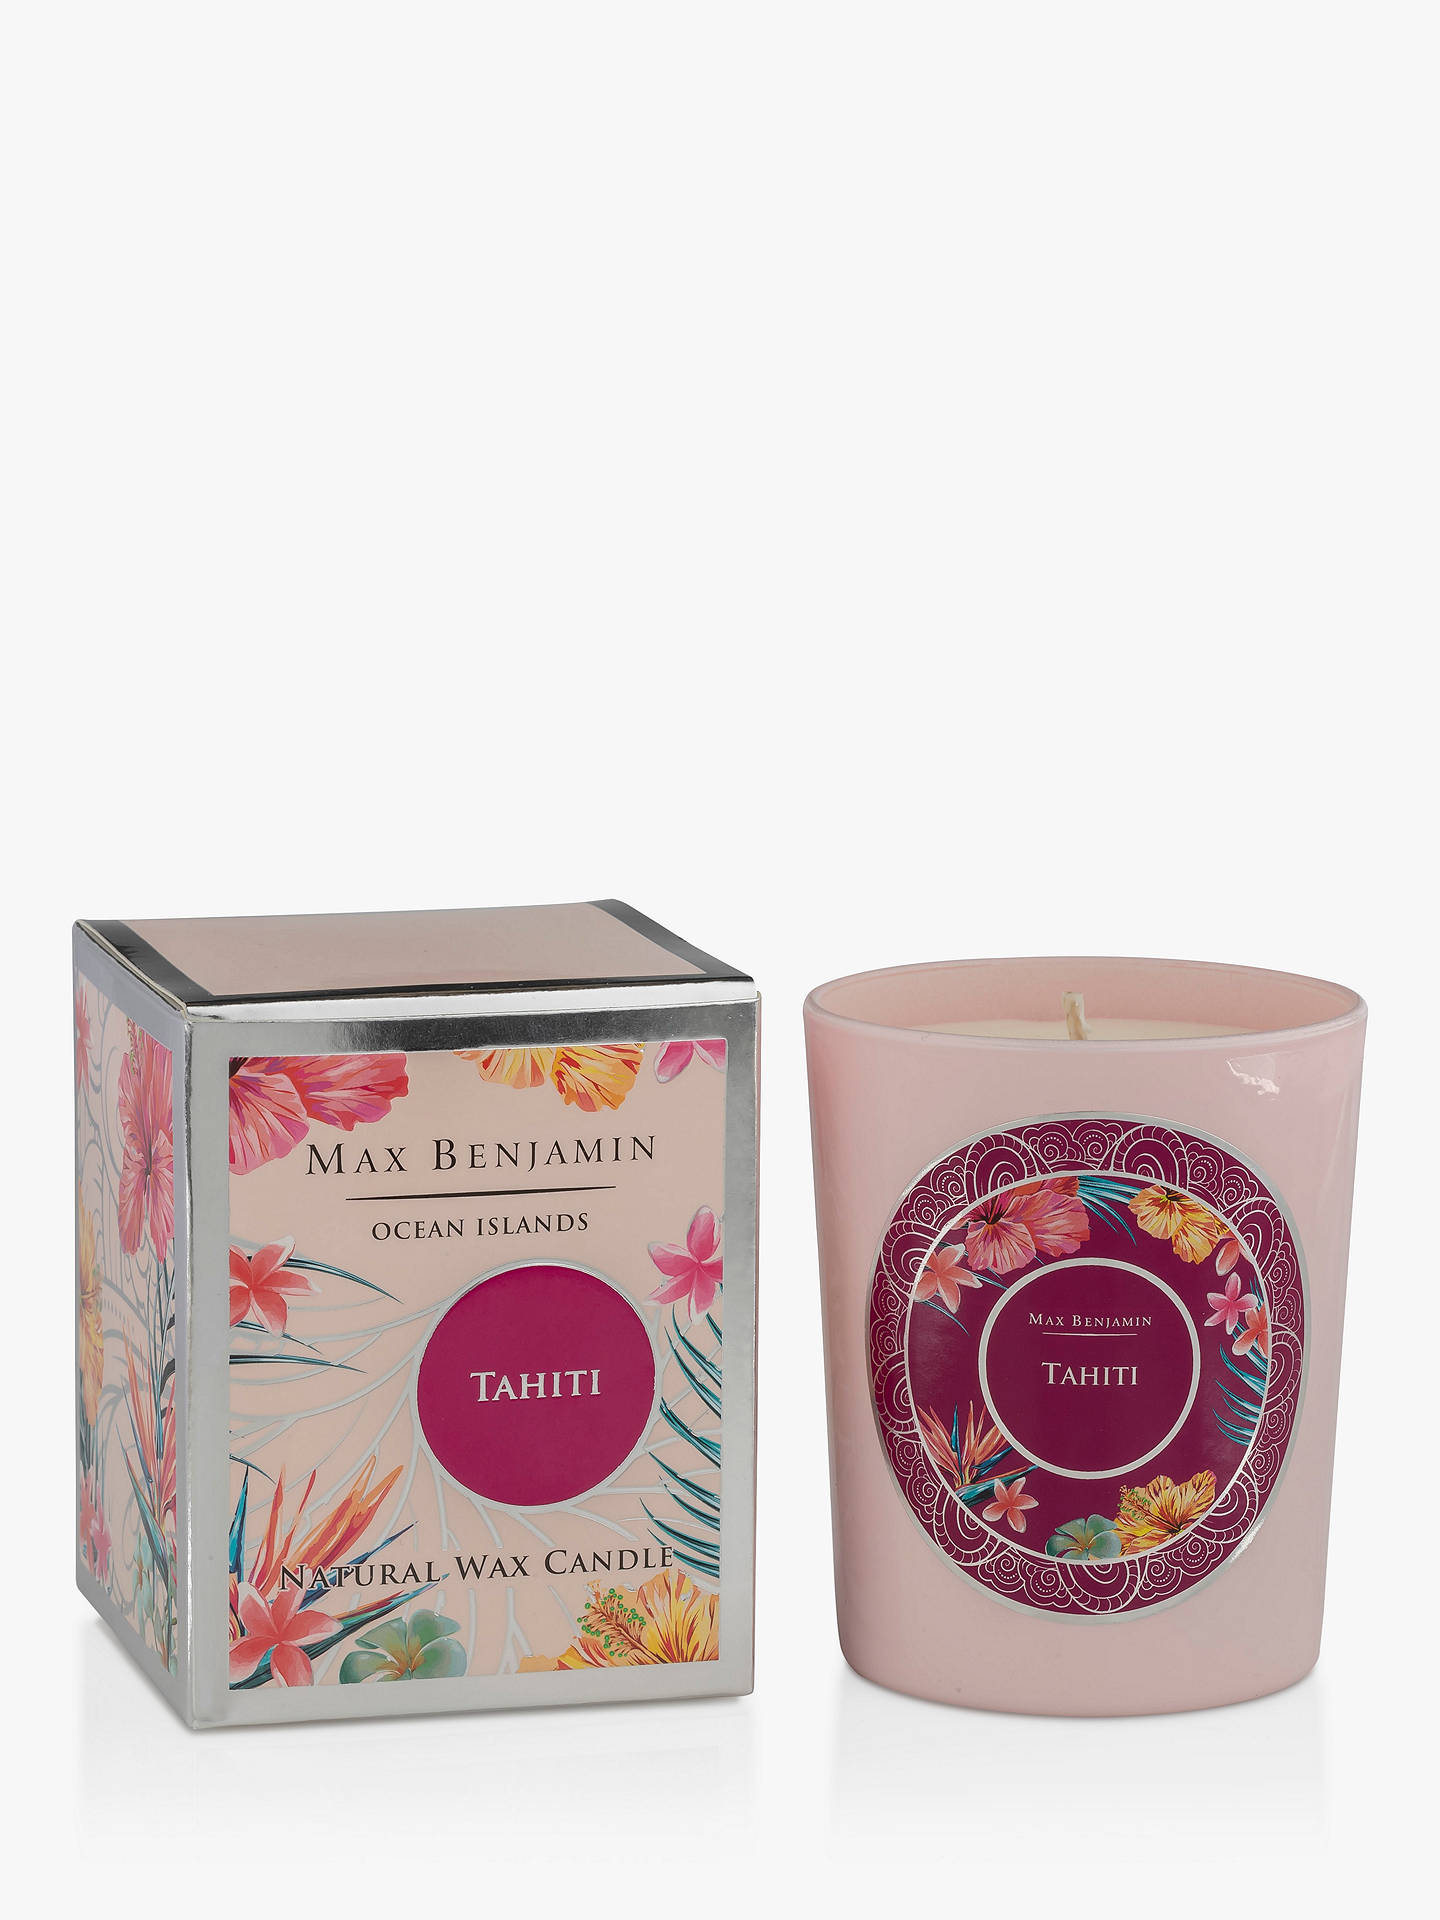 Max Benjamin Ocean Islands Tahiti Scented Candle, 452g by Max Benjamin